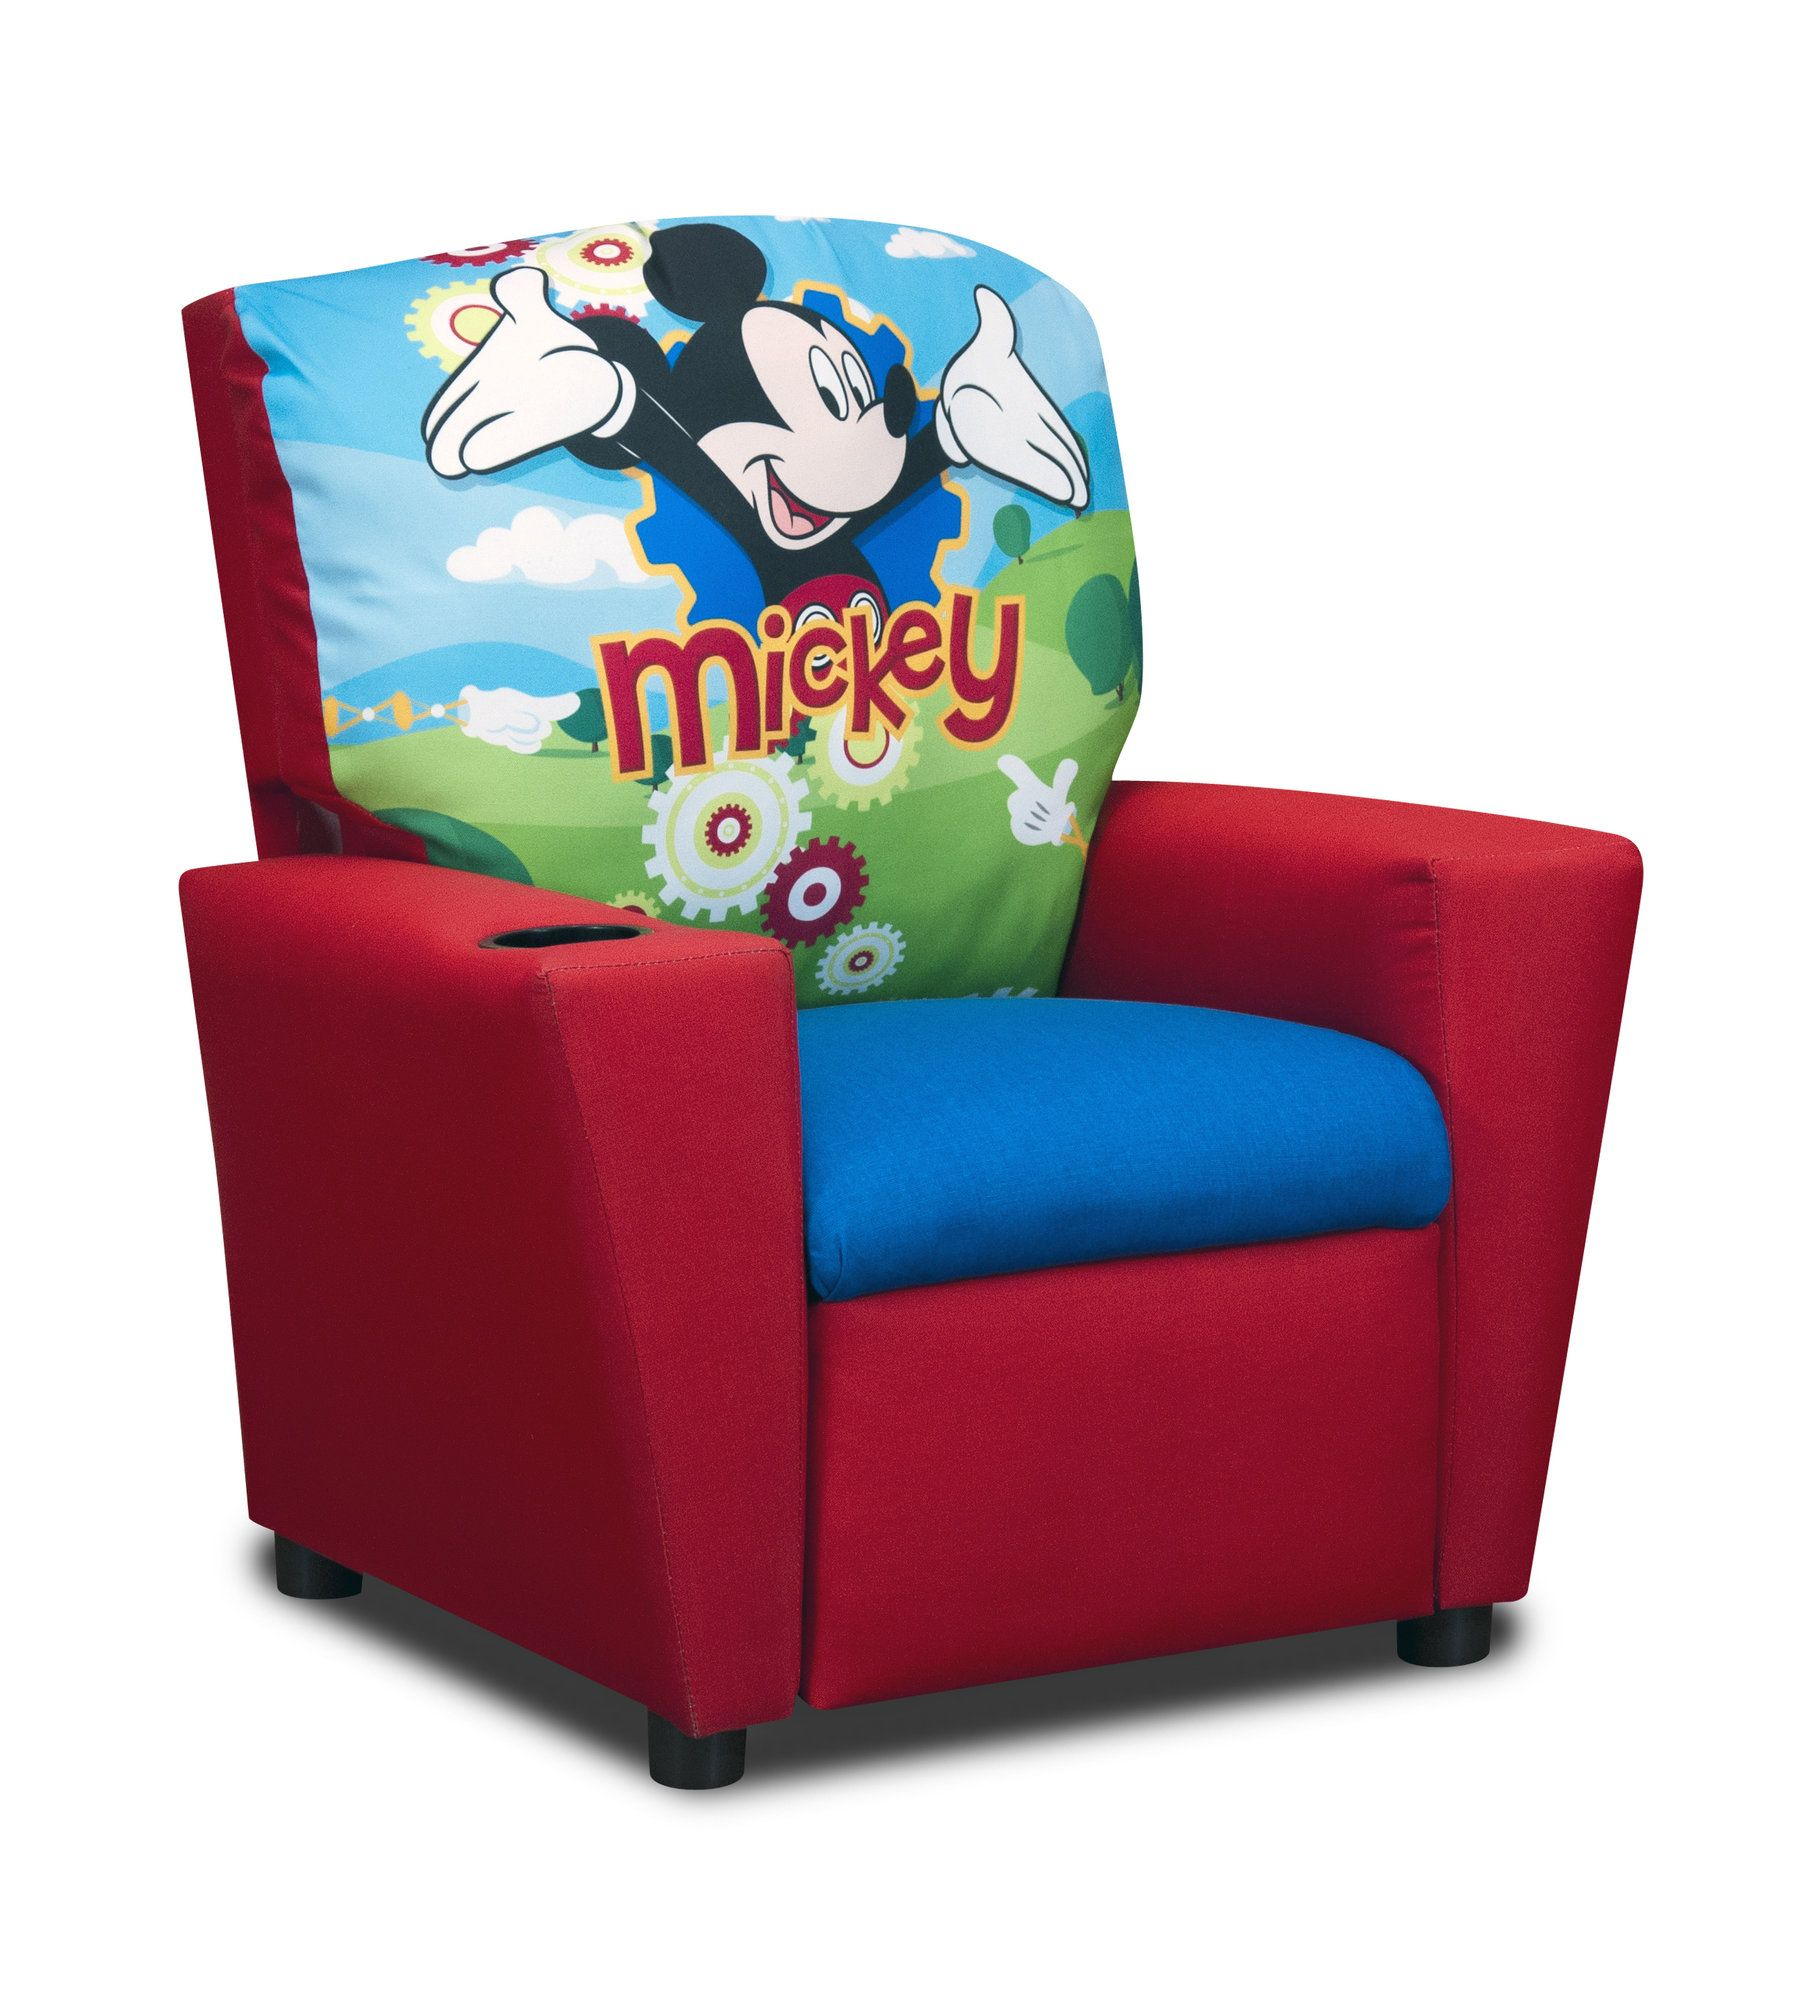 Disneyus mickey mouse clubhouse kids cotton recliner chair with cup